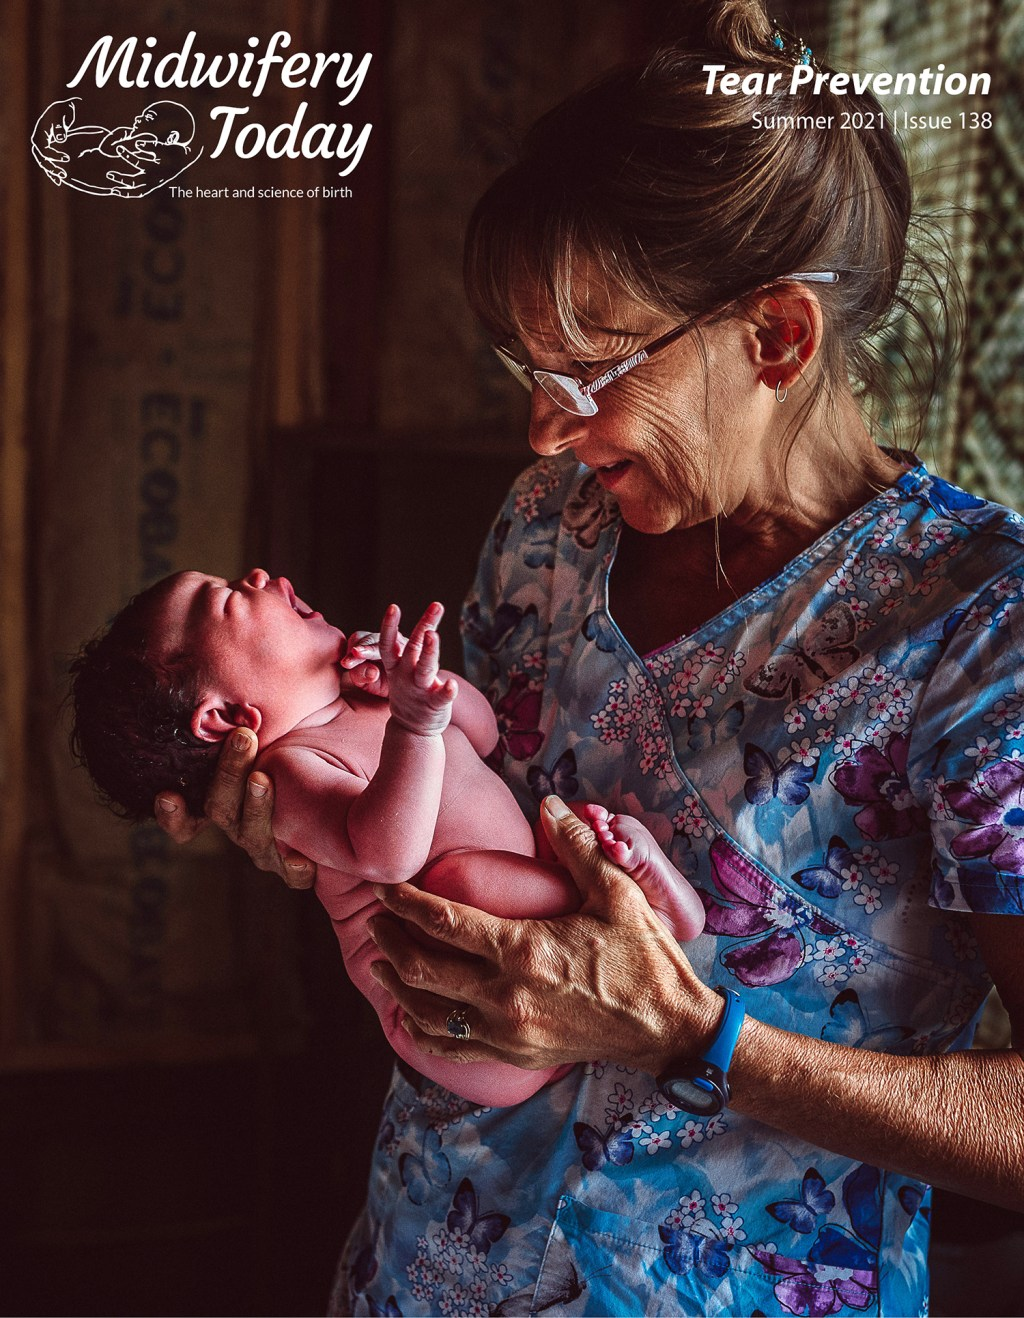 Midwifery Today Issue 138 Cover